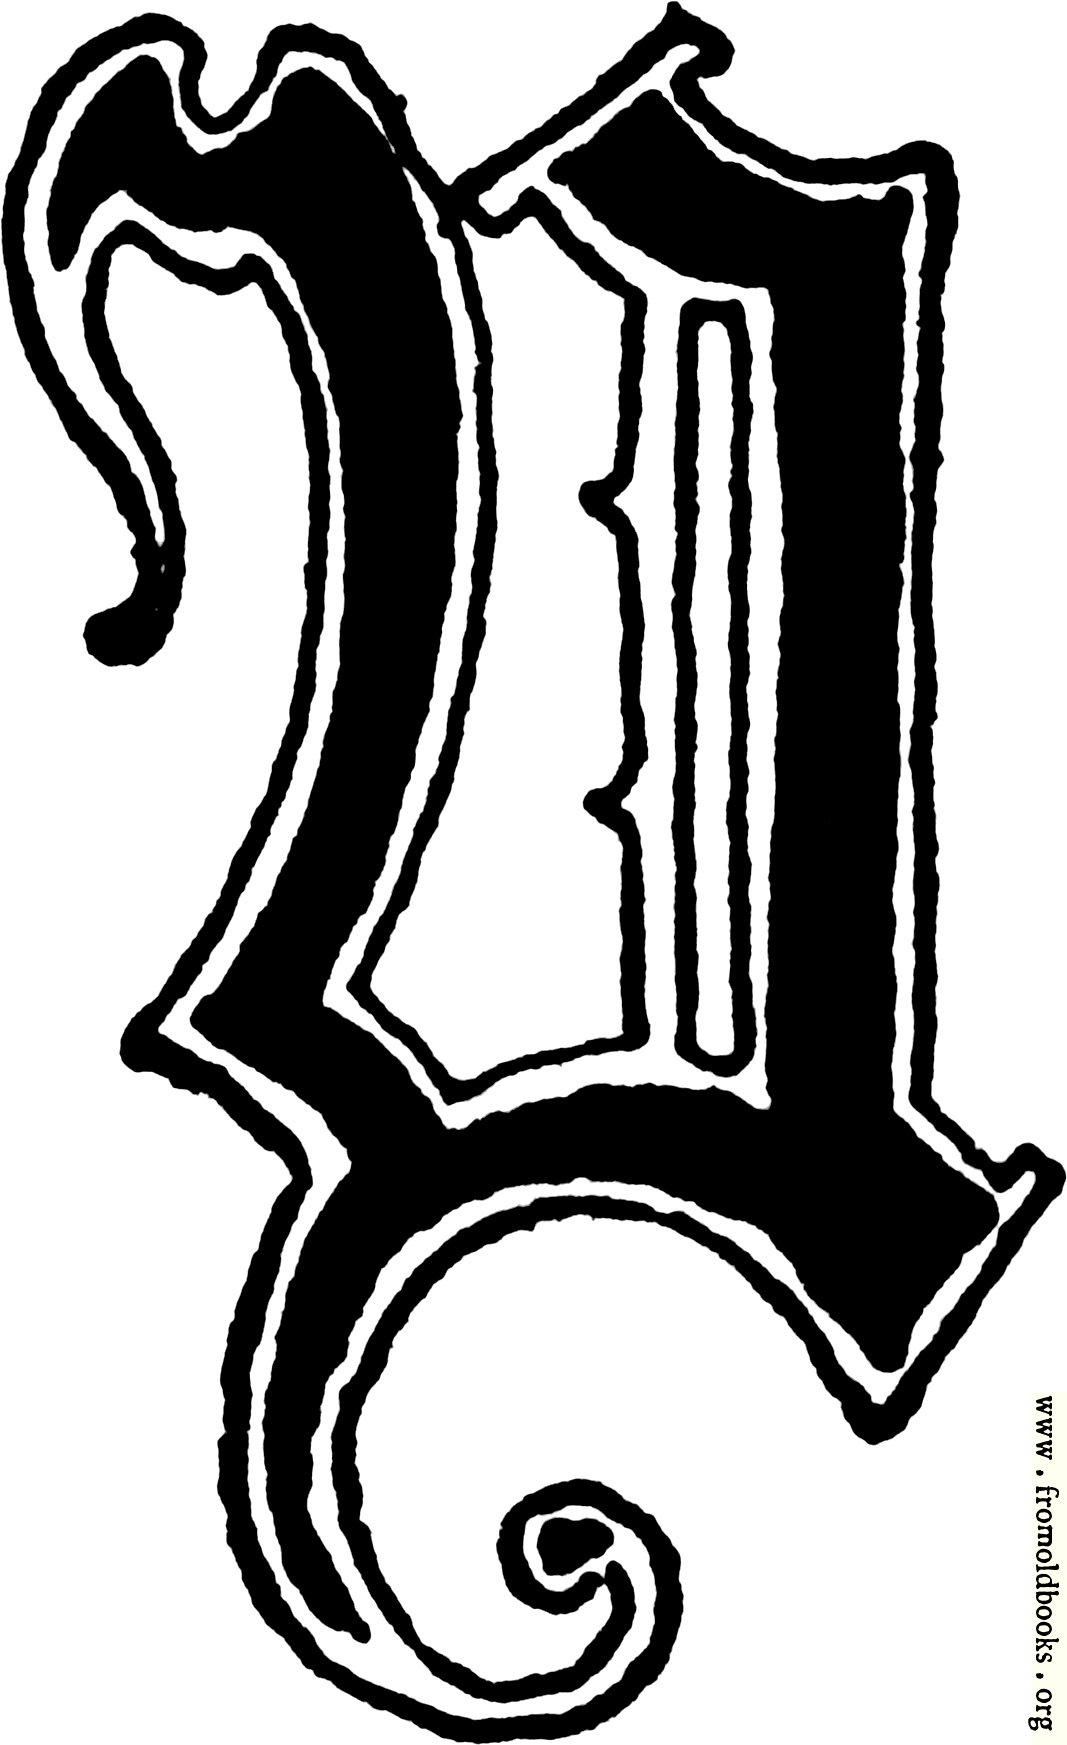 Calligraphic Letter Y In 15th Century Gothic Style